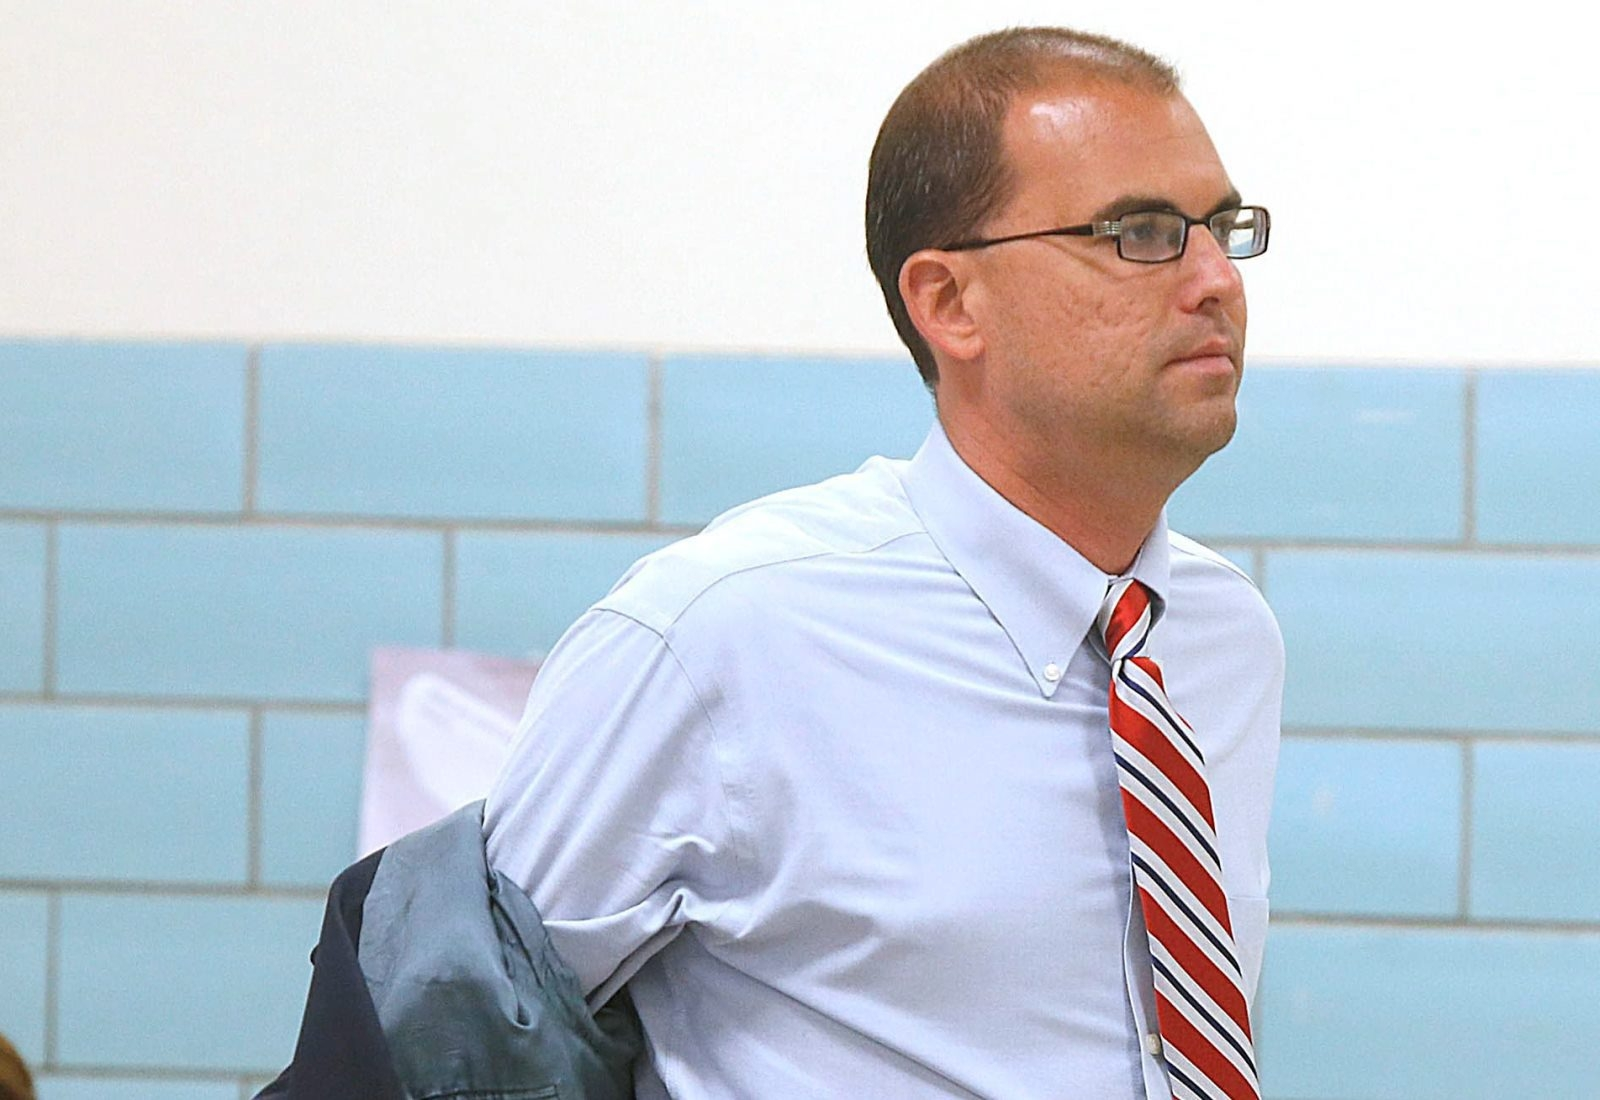 A source inside the Hamburg School District said Superintendent Richard E. Jetter was not in the district office Tuesday.